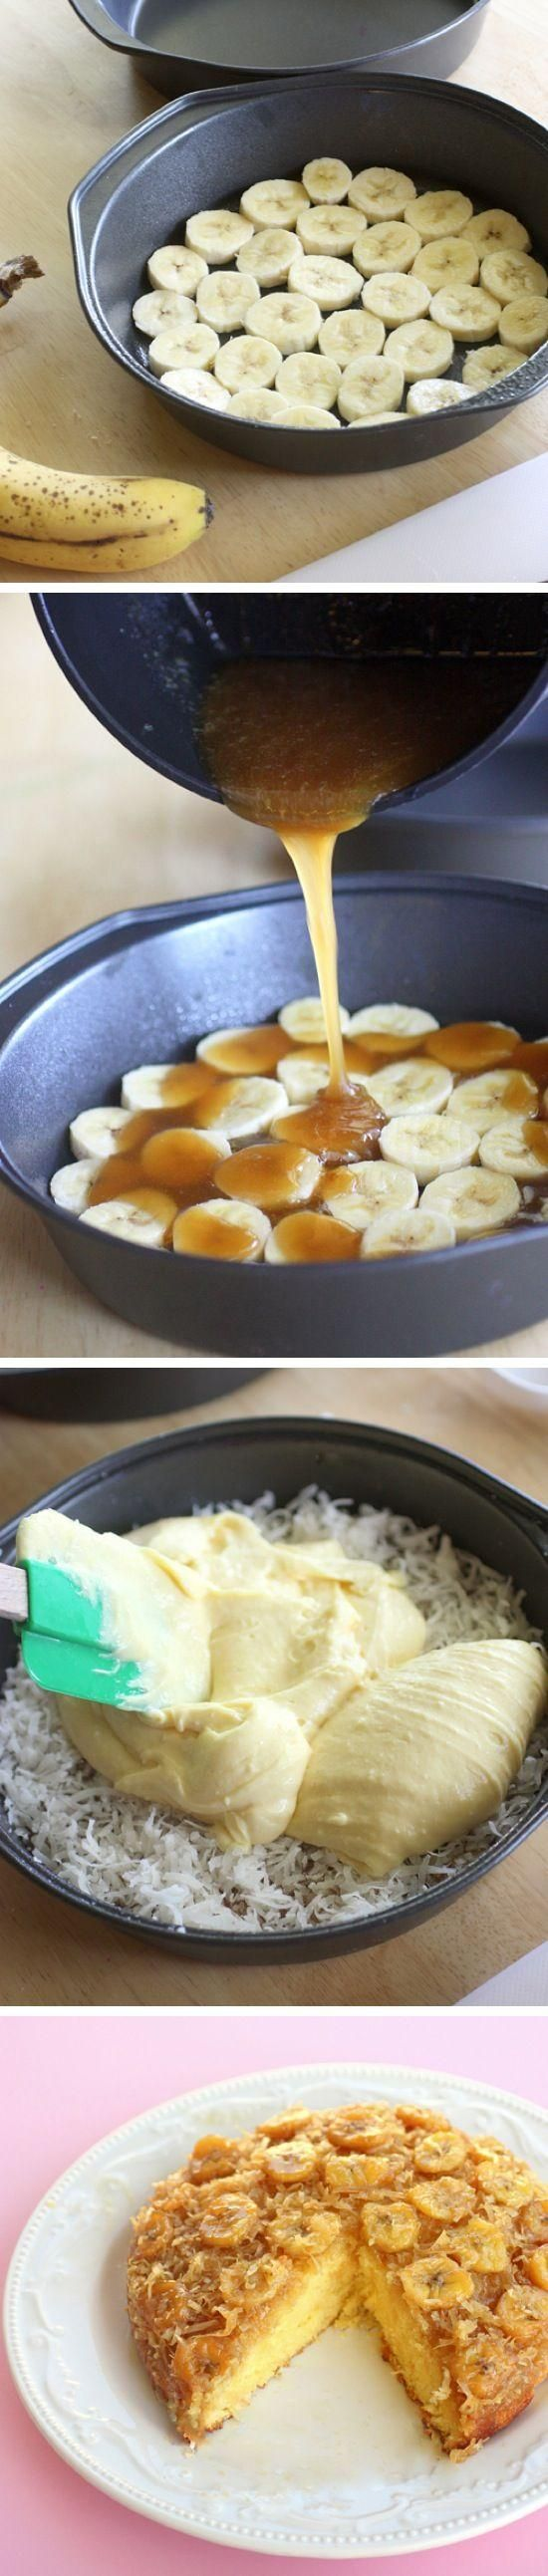 Banana Coconut Upside Down Cake - OMG! That just looks absolutely yummy!